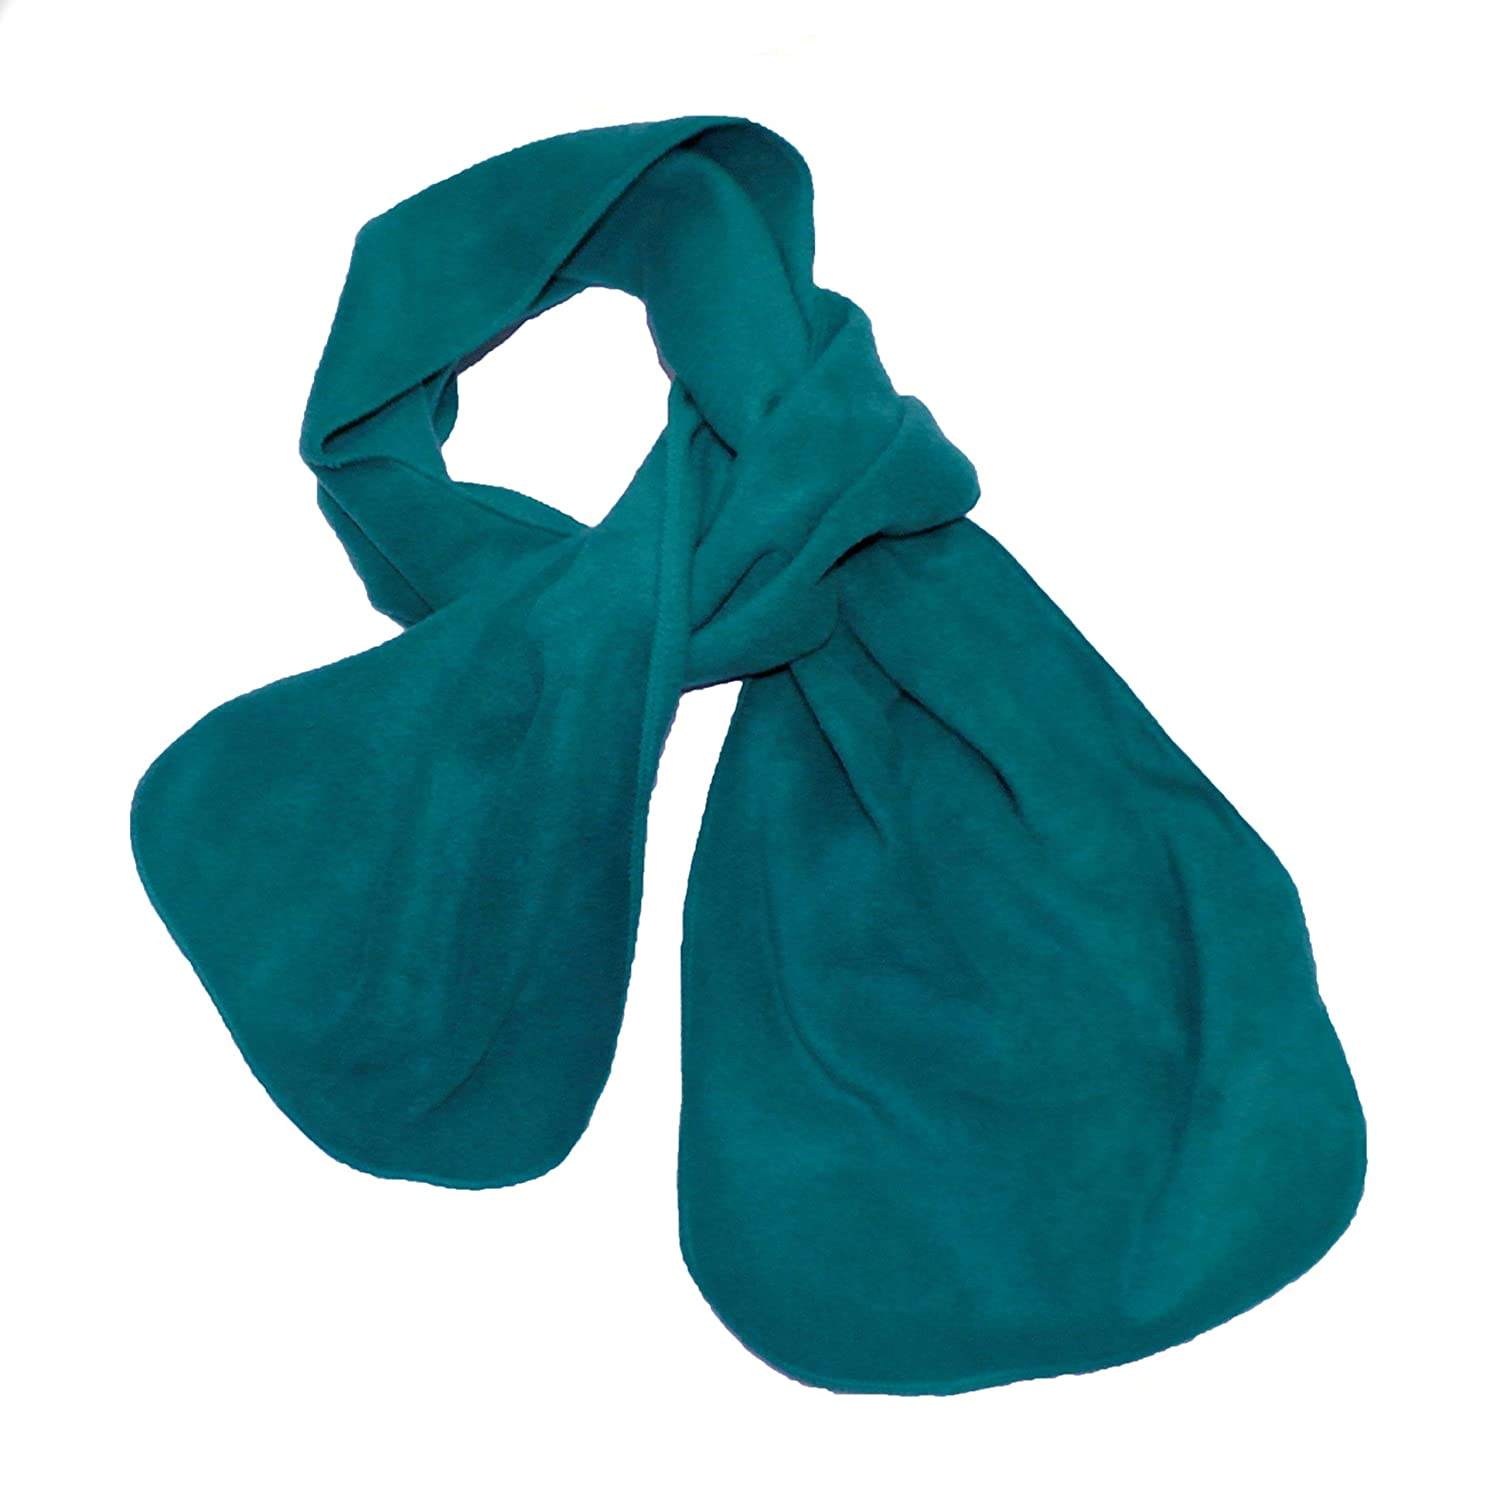 Brand New Good Quality Boys Girls Childs Polar Fleece Scarf - Matching School Colours - Great for Outdoors in the Winter - 45